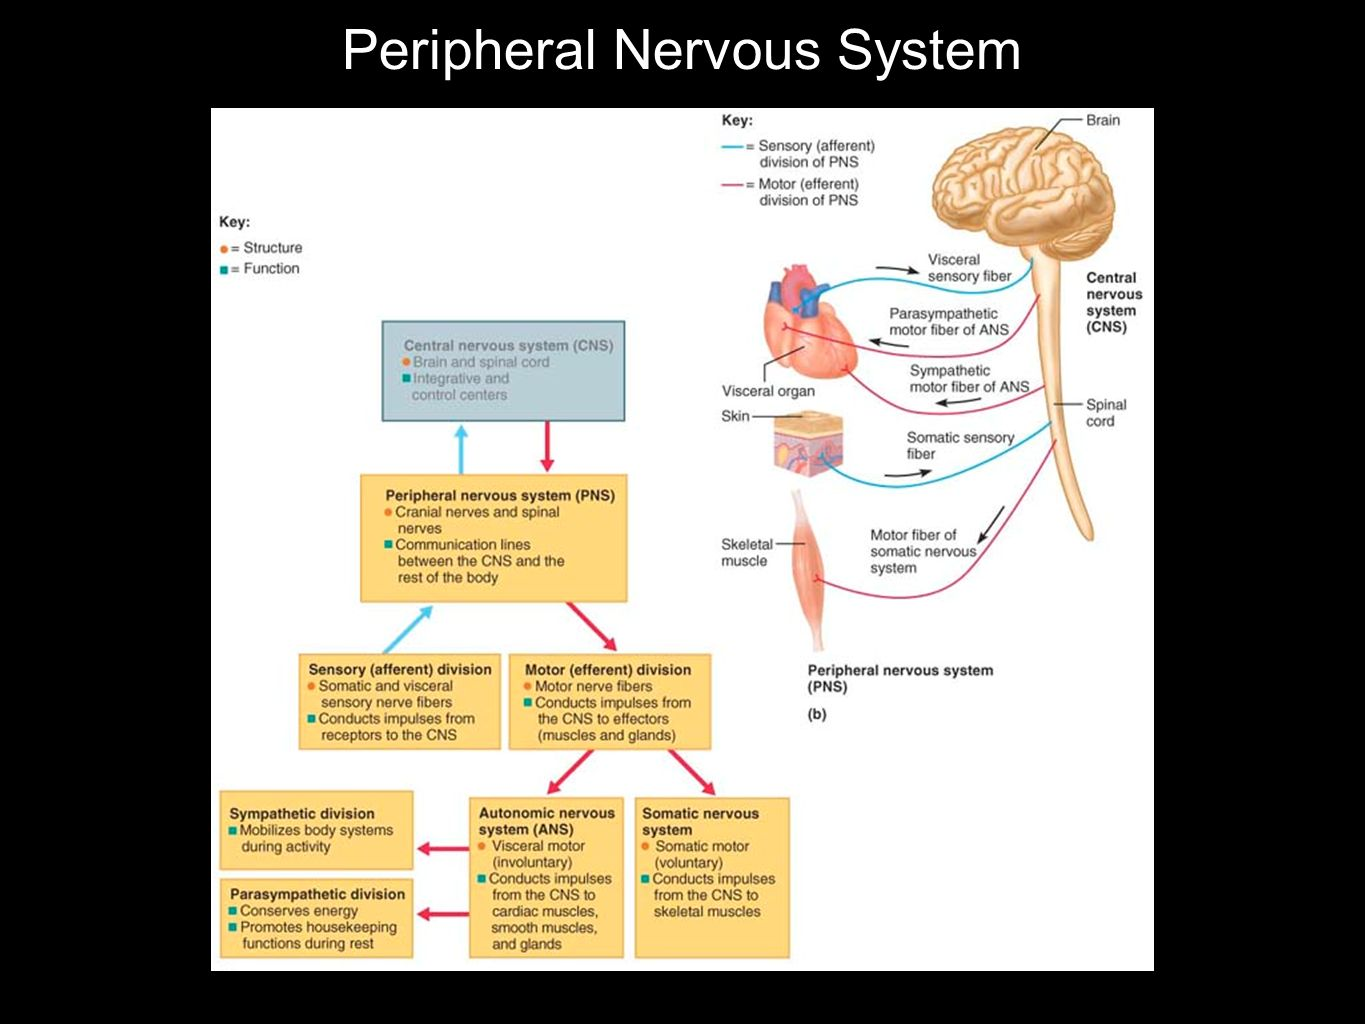 Autonomic Nervous System Responsible for involuntary visceral motor activity conducts impulses from the CNS to cardiac muscle smooth muscles glands Two Divisions SYMPATHETIC Engages body systems during activity PARASYMPATHETIC Conserves energy antagonist of sympathetic system